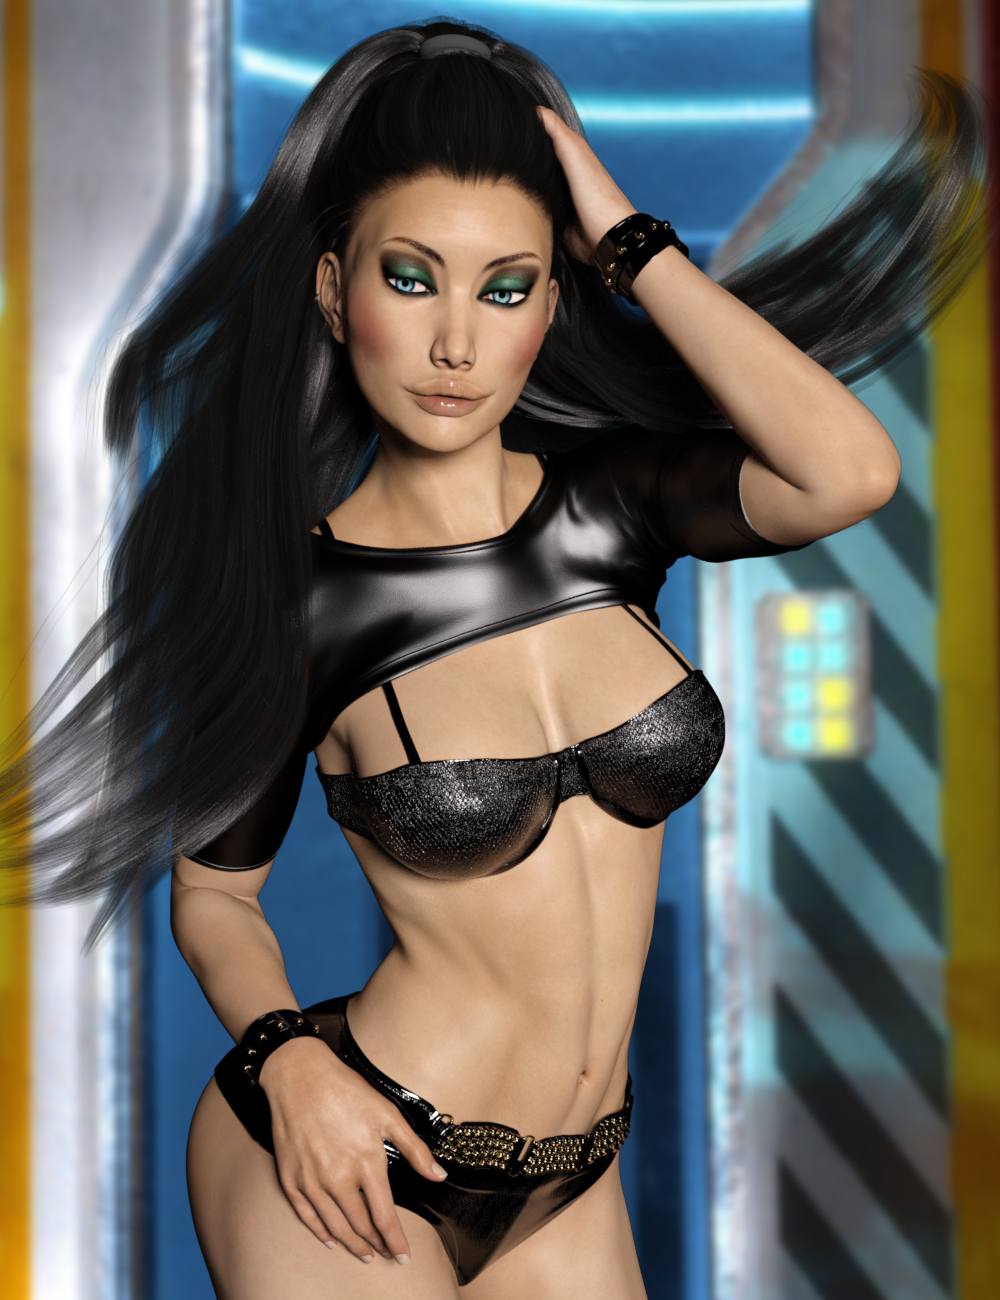 1dd41cdee1b9a InStyle - Joke Outfit for Genesis 3 Females 3D Figure Assets -Valkyrie-